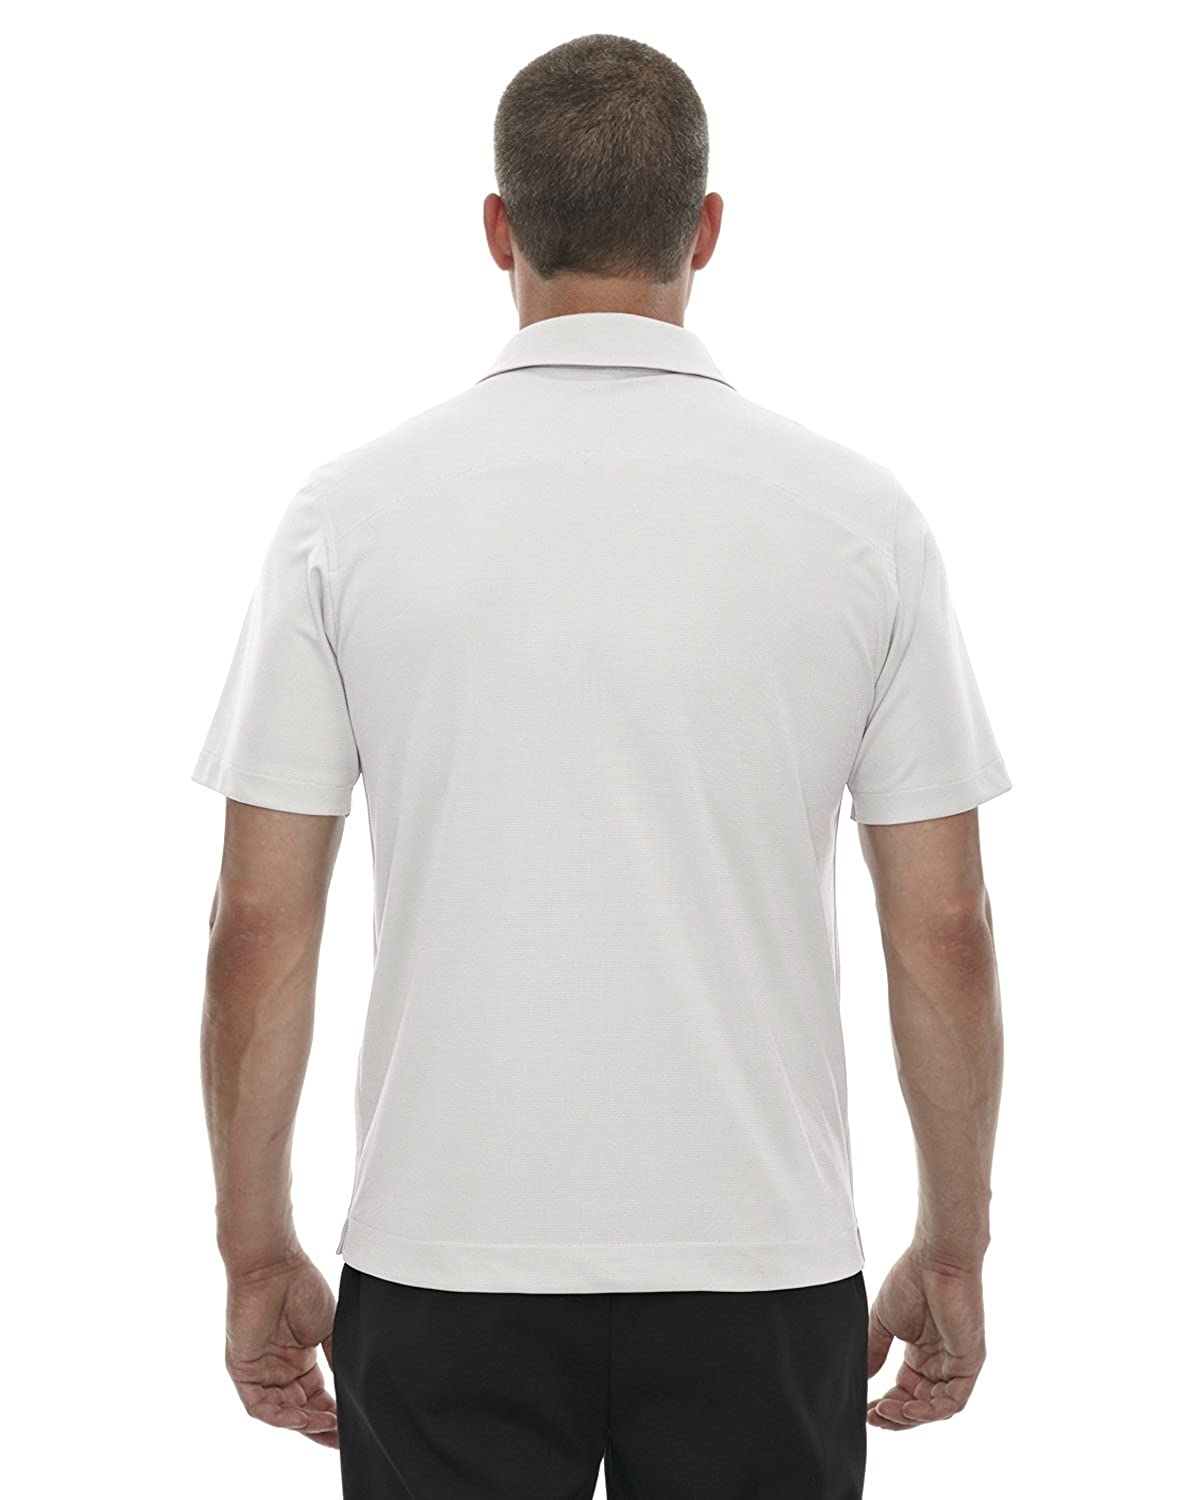 Ash City North End Sport Red mens Evap/ Quick Dry Performance Polos 88682